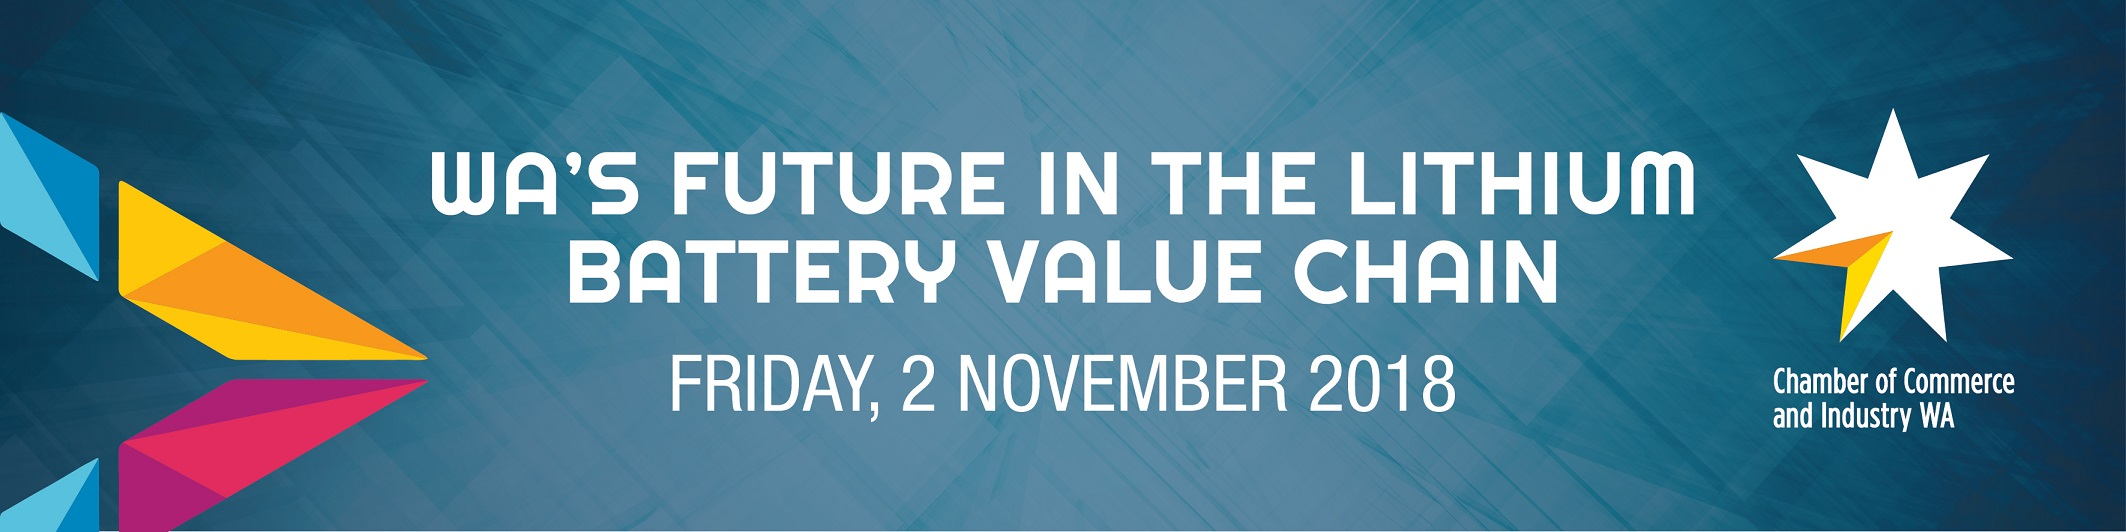 Tickets for WA's Future in the Lithium Battery Value Chain in Perth from Ticketbooth